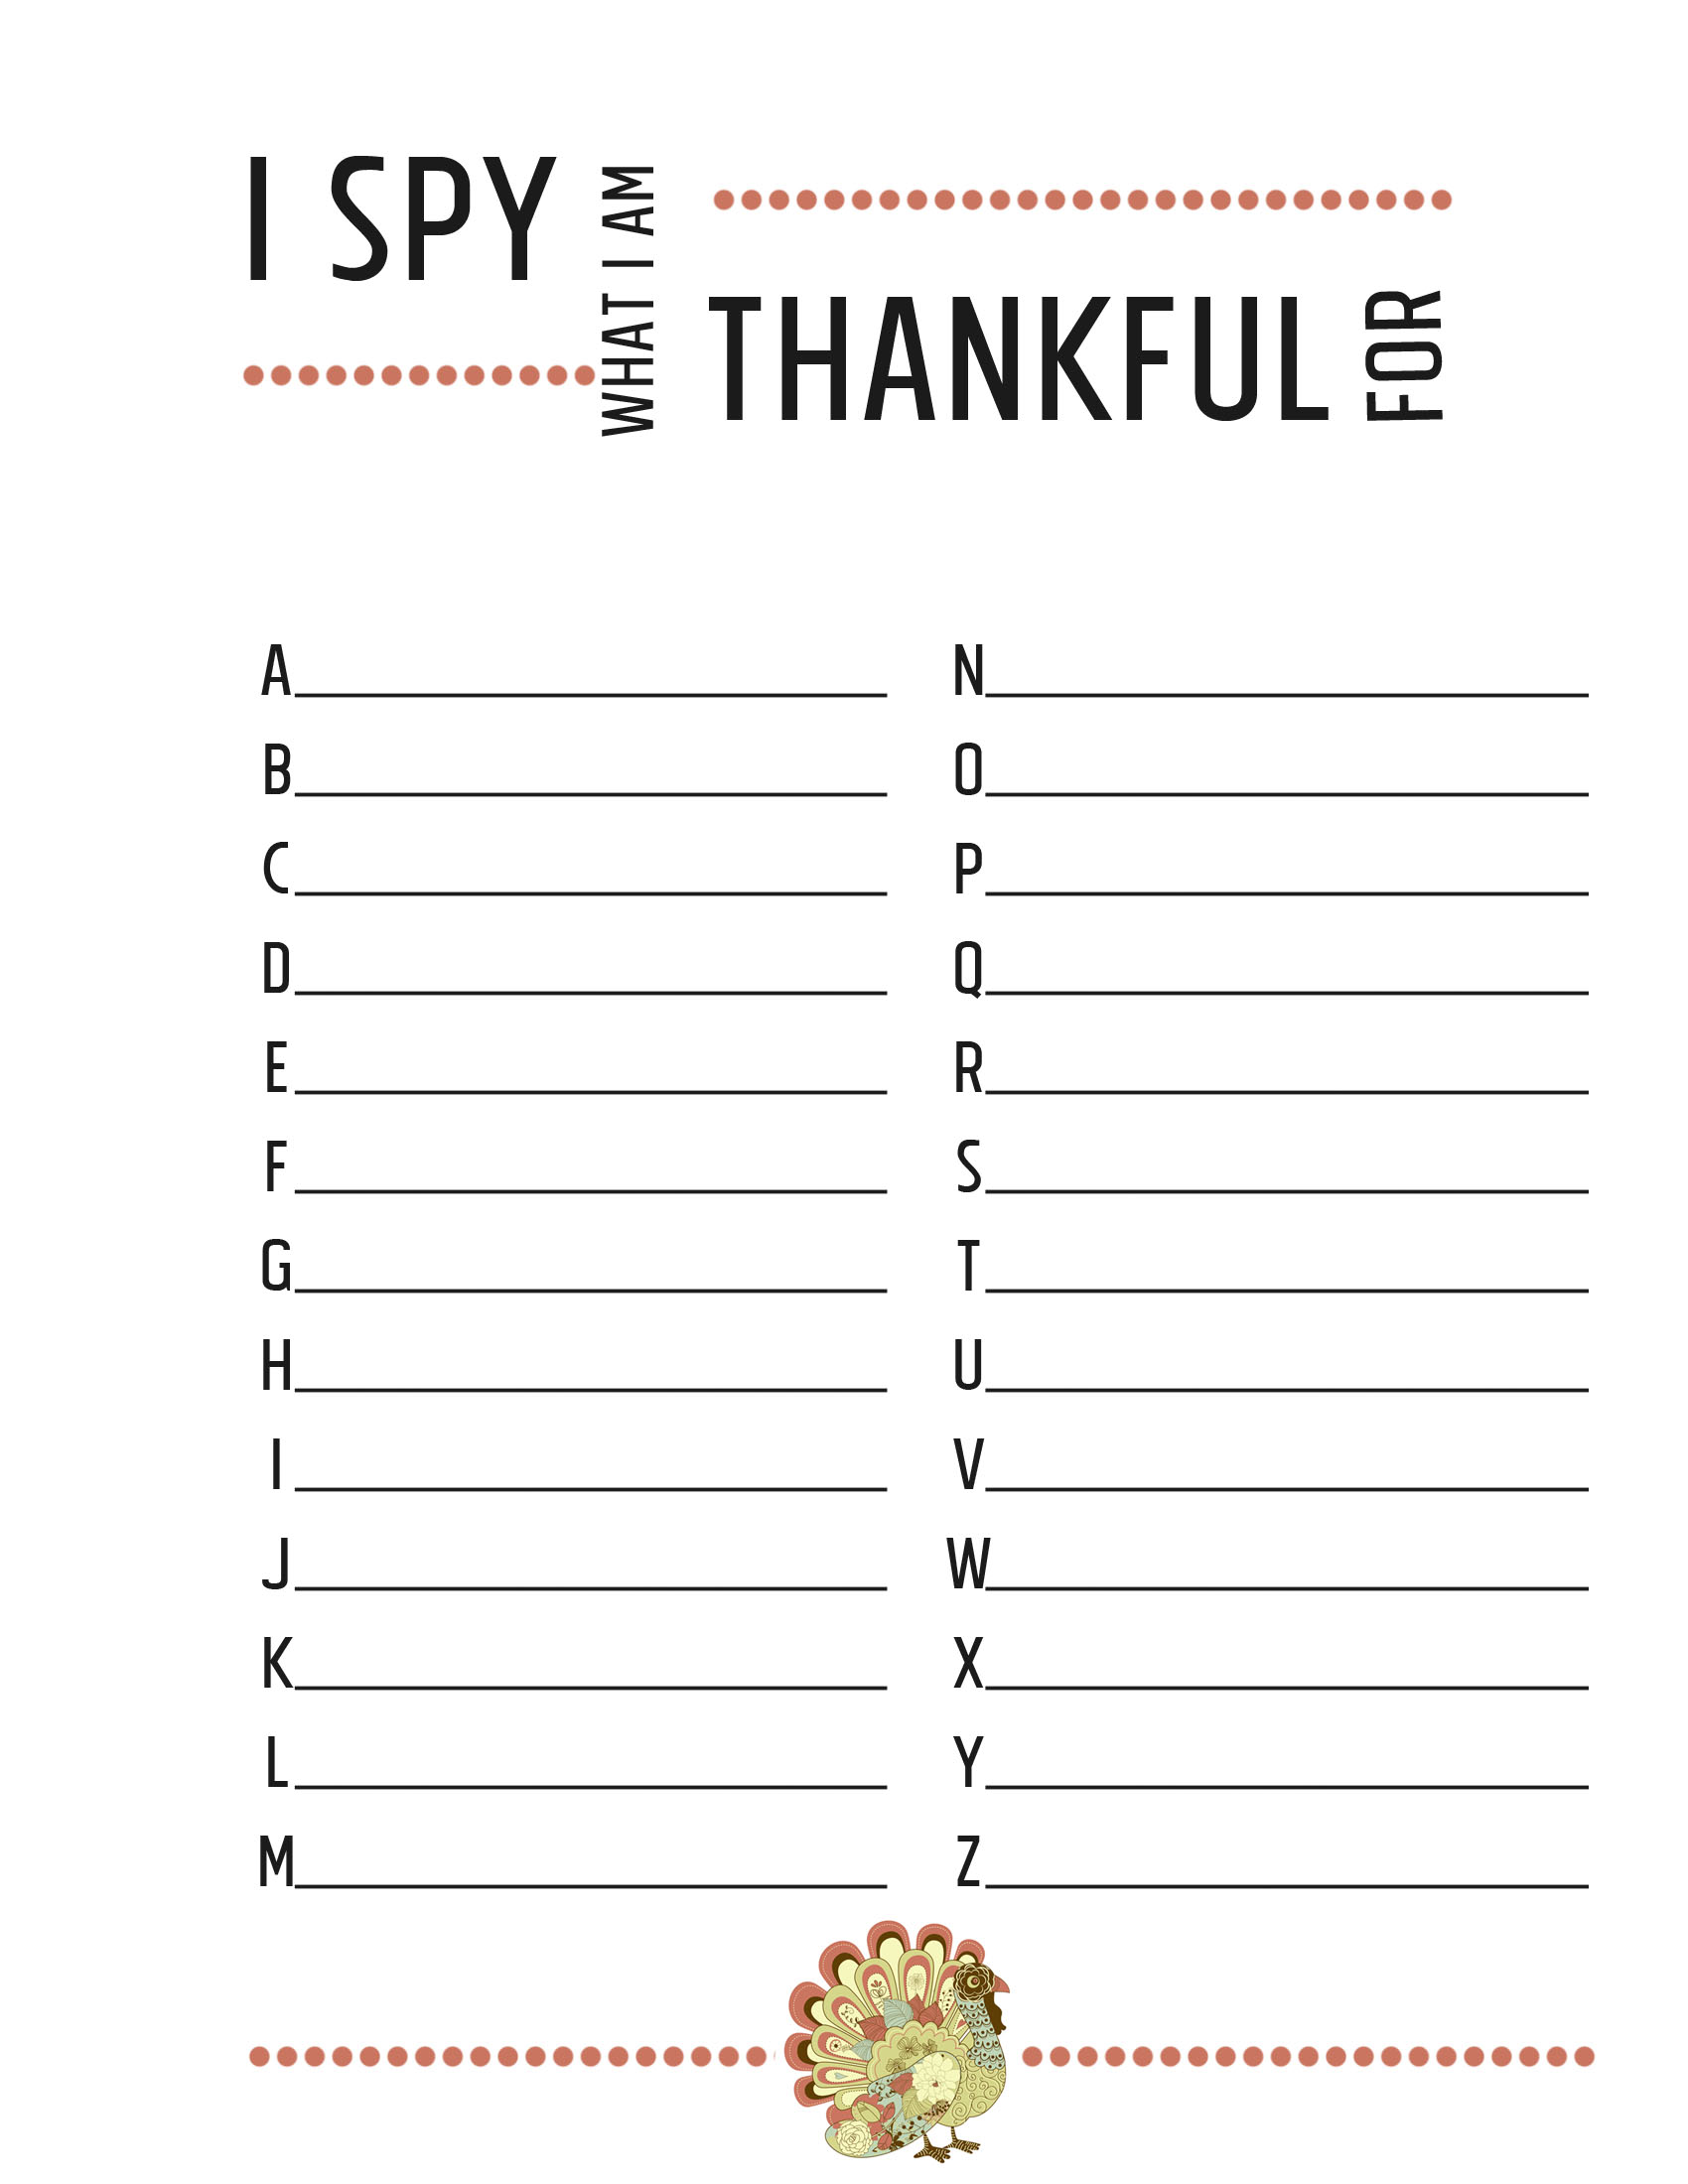 worksheet Thanksgiving Printable Worksheets thanksgiving worksheets free printables jessicalynette com worksheets